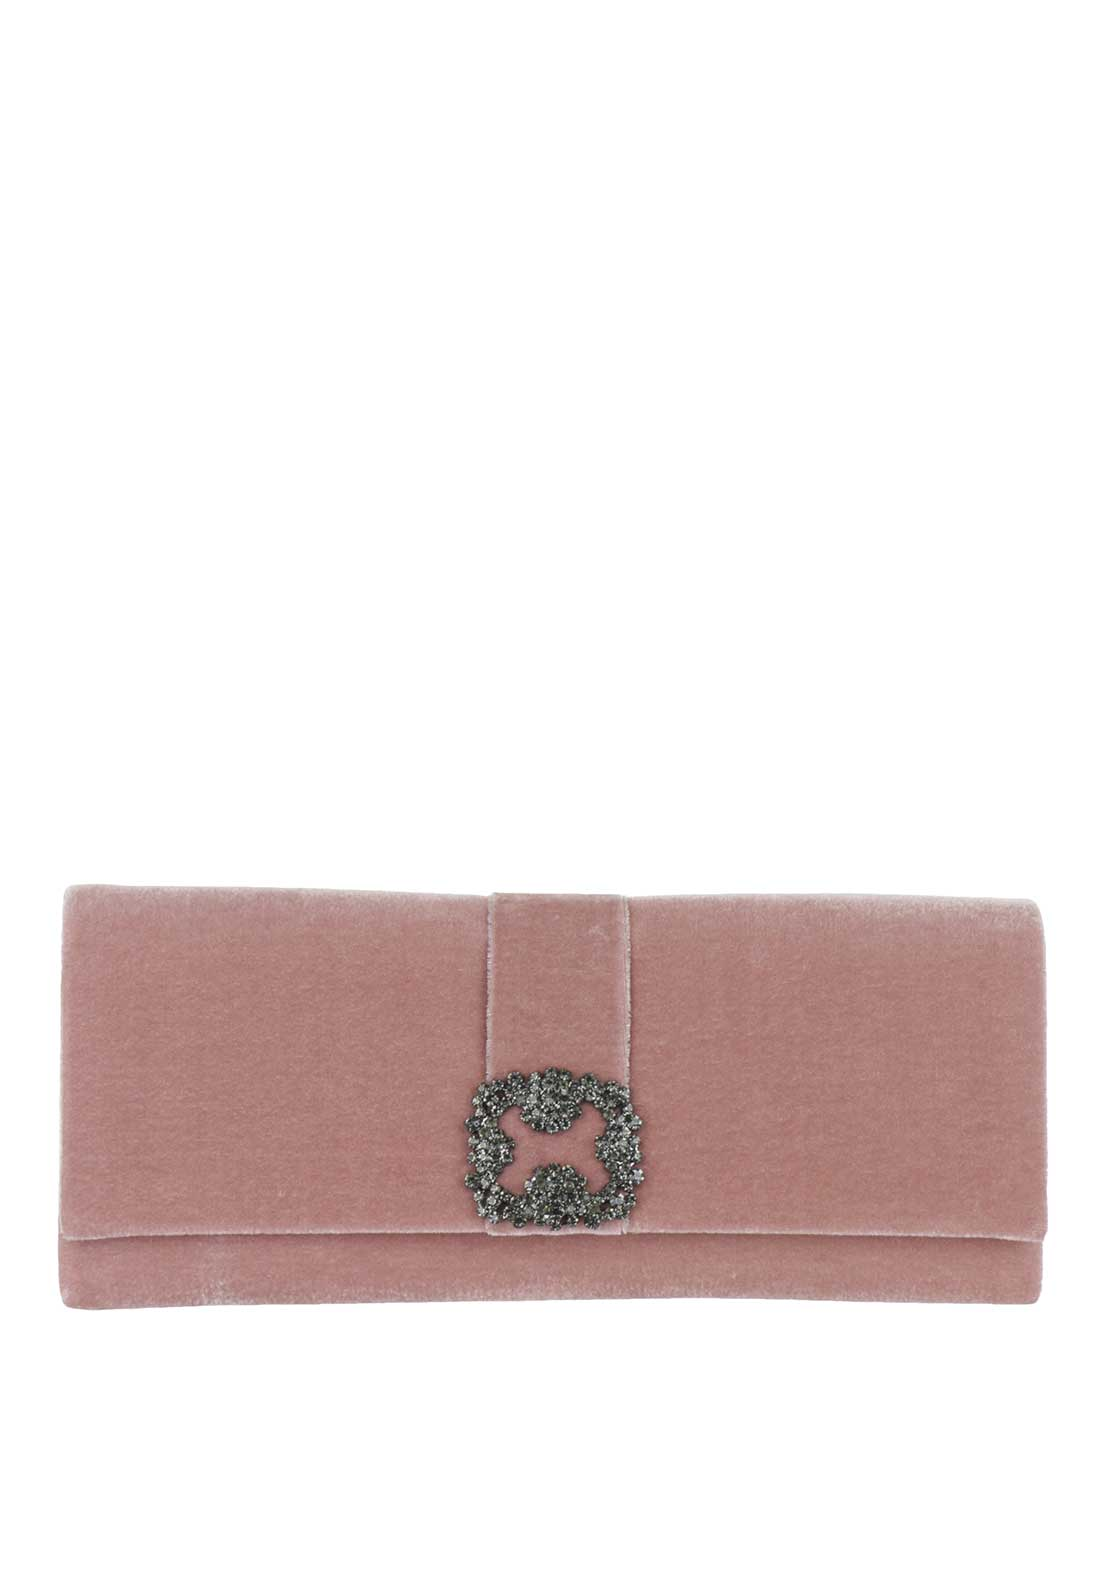 Glamour Velvet Embellished Clutch Bag, Pink